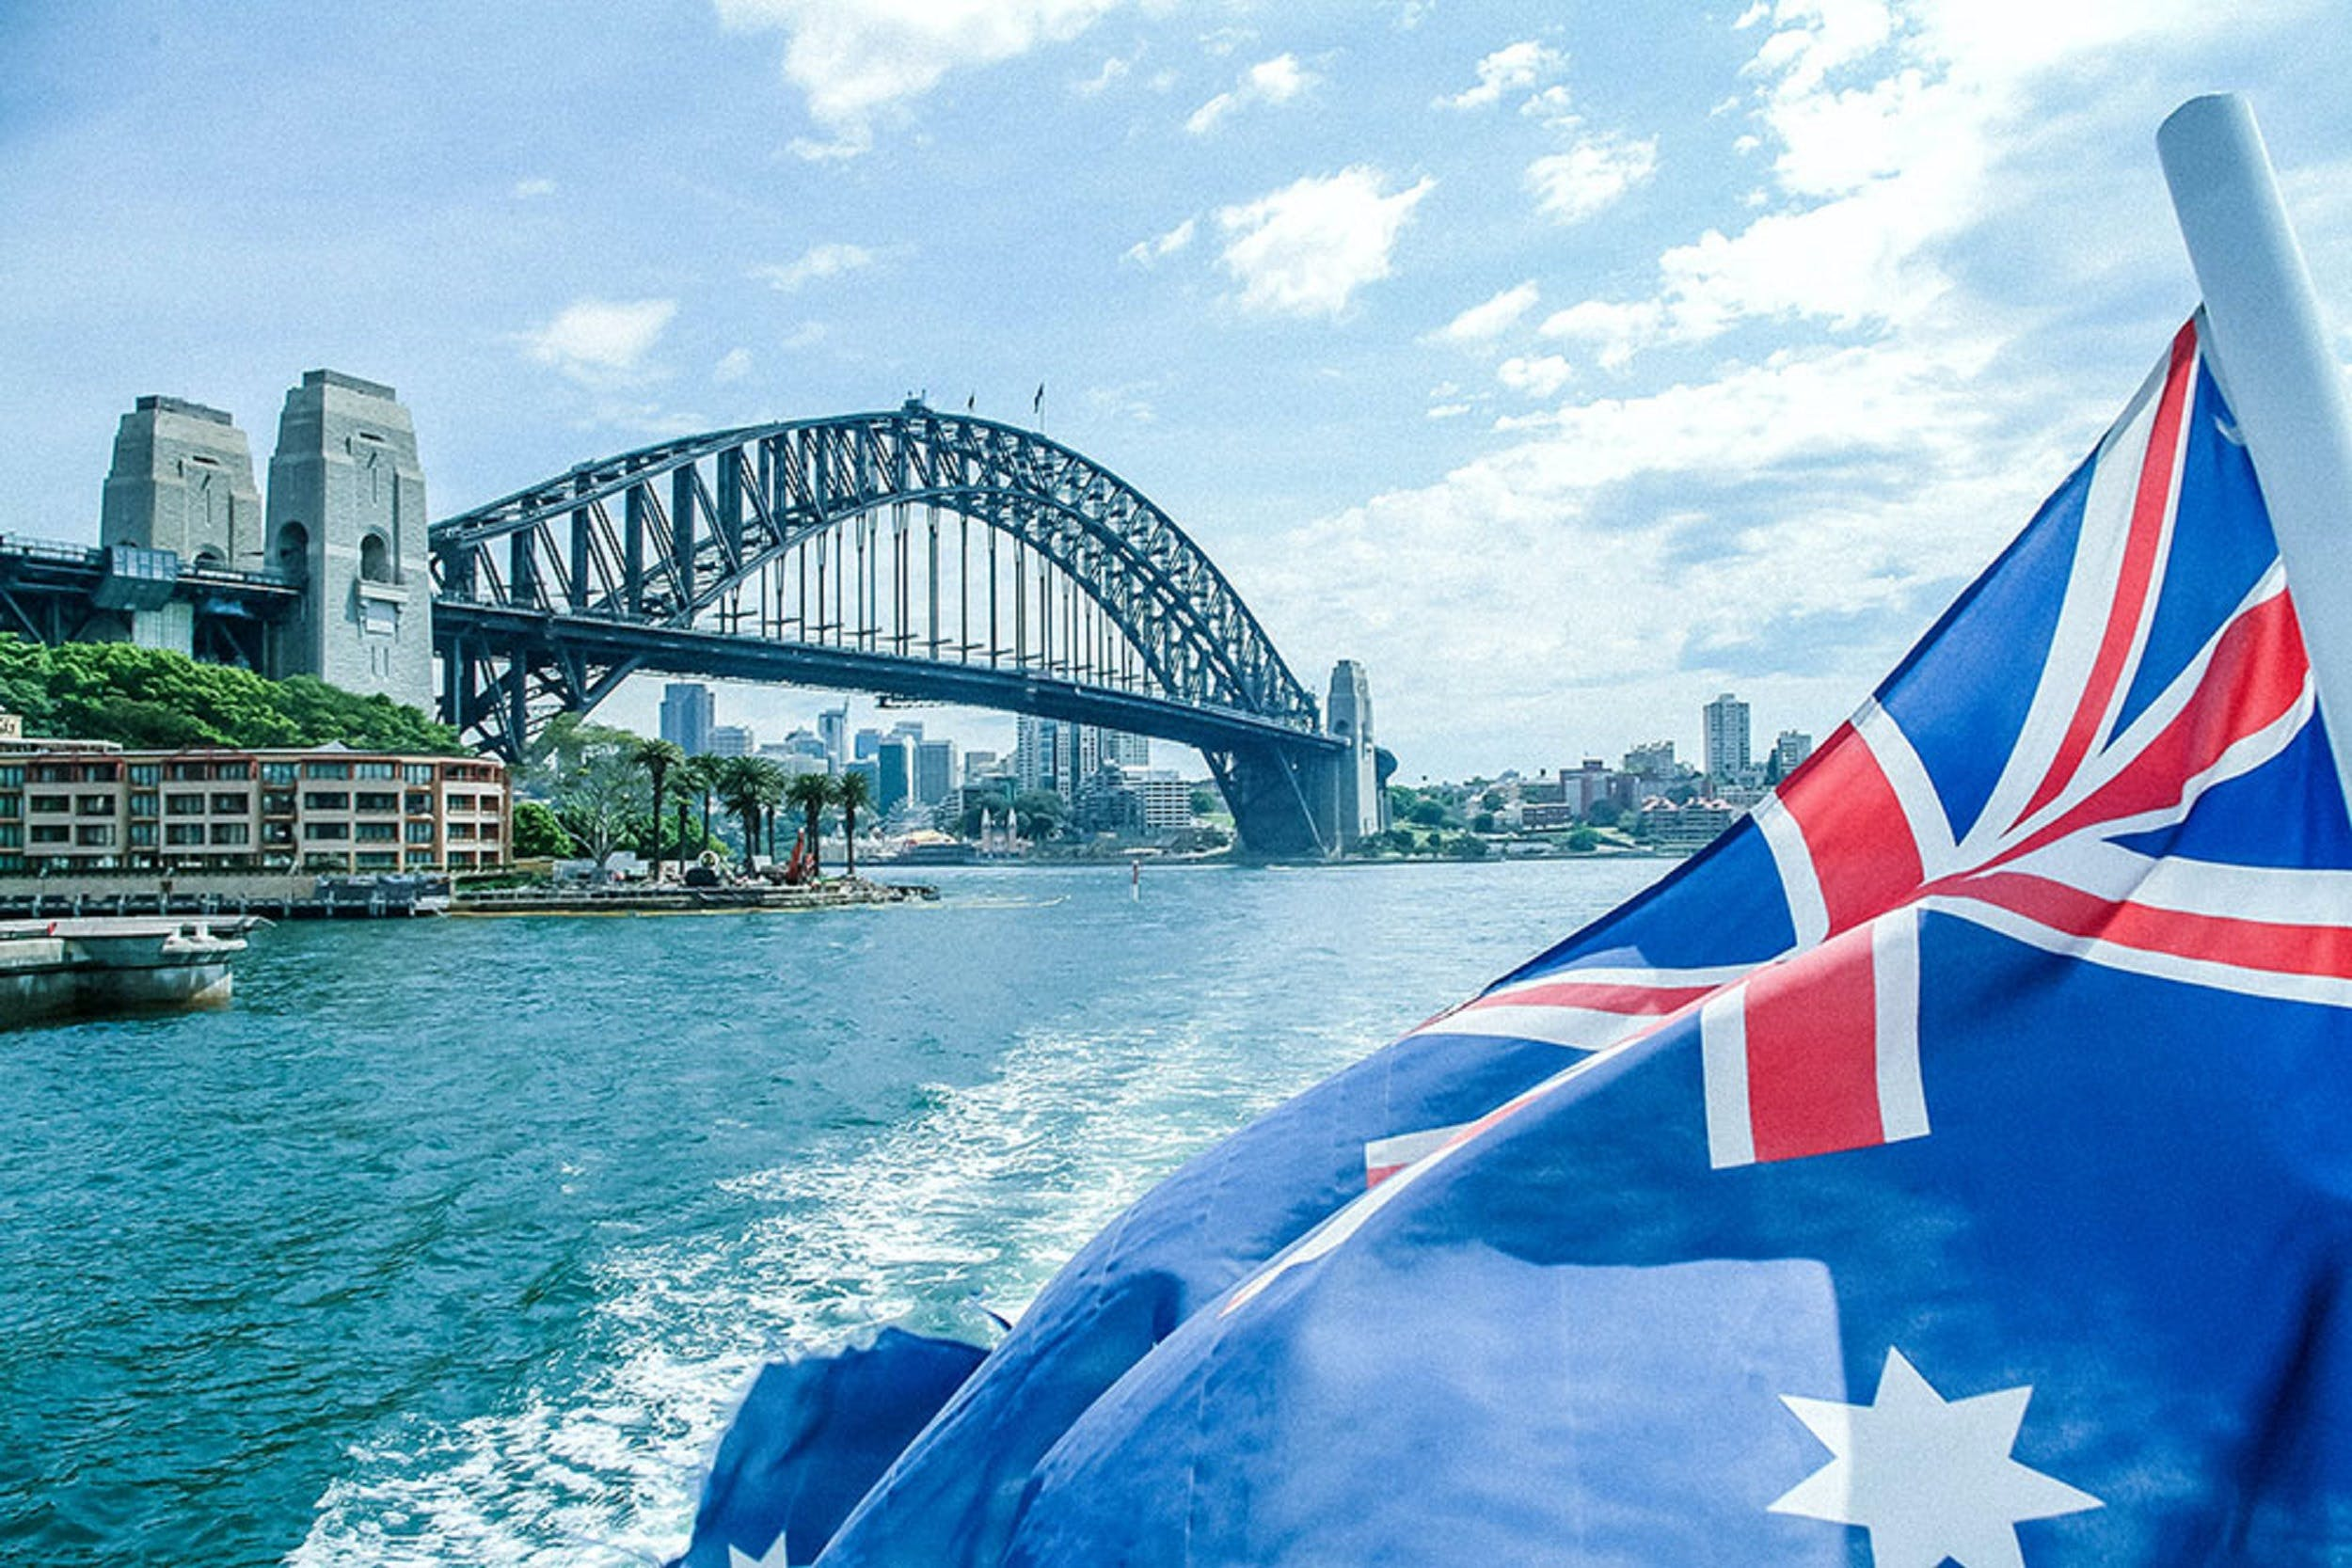 Australia Day Lunch and Dinner Cruises On Sydney Harbour with Sydney Showboats - Accommodation Broome